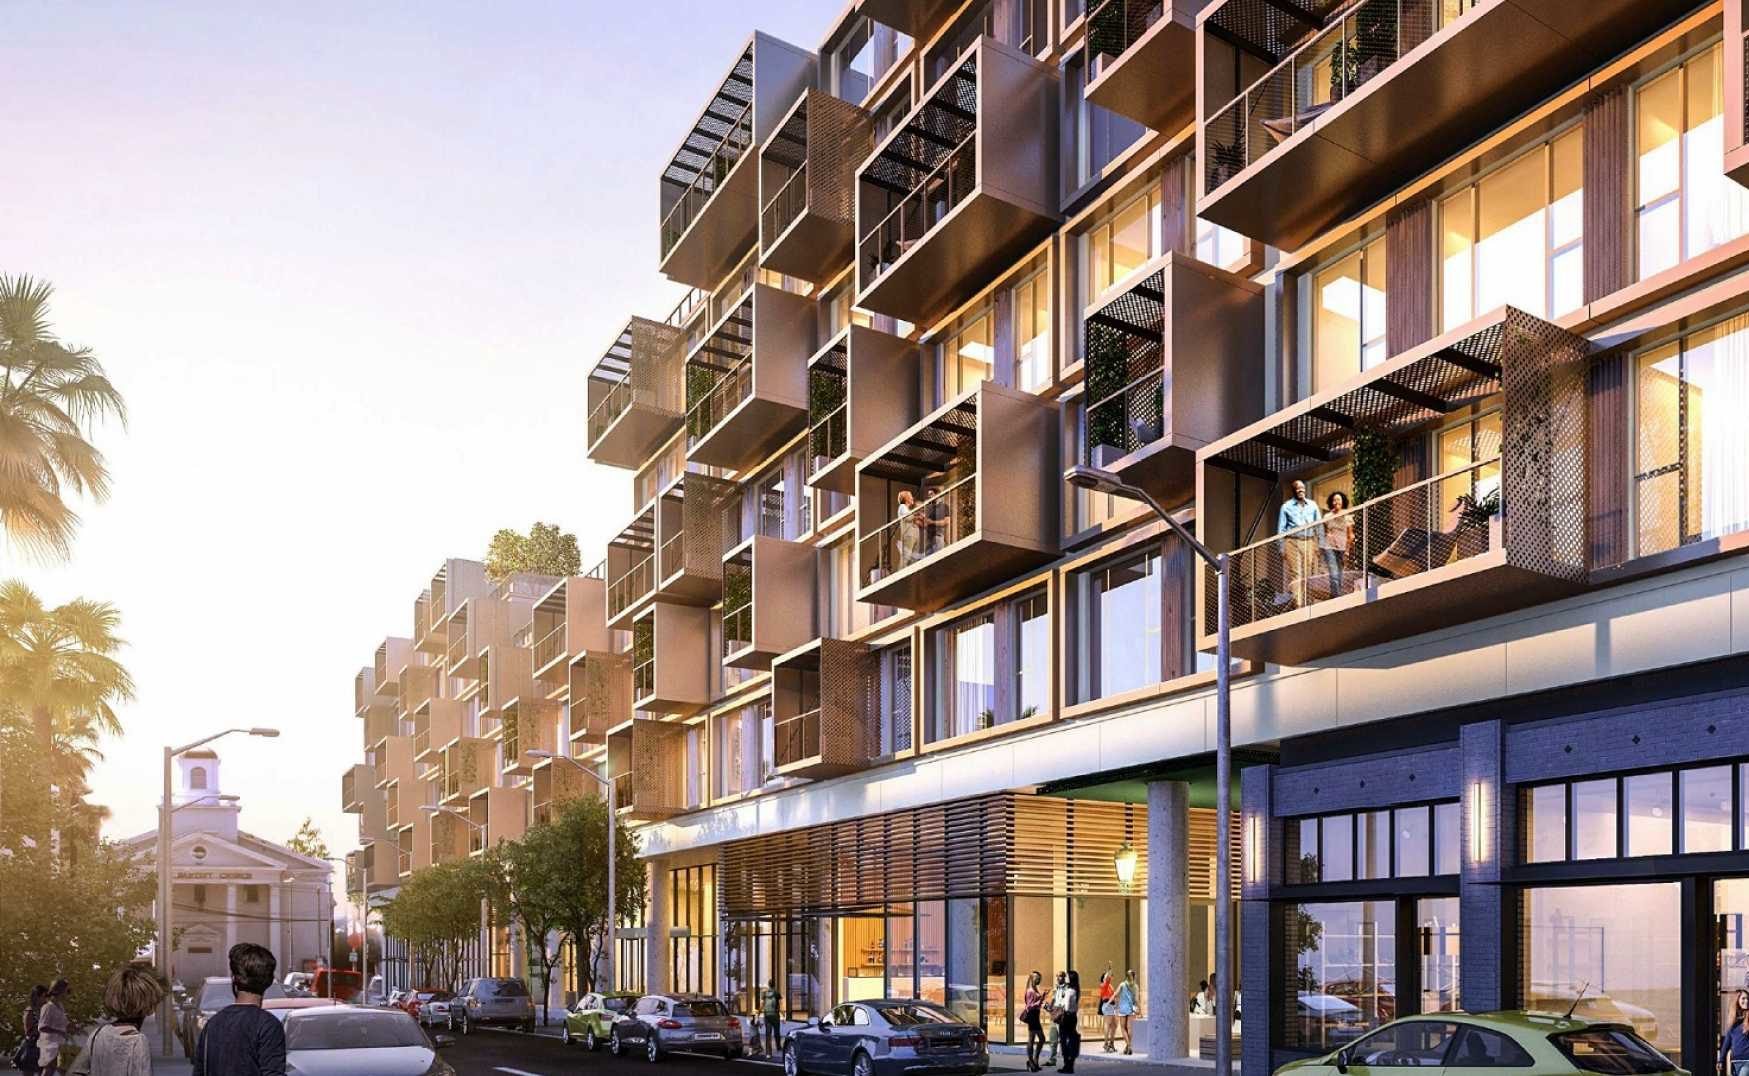 Renderings Revealed for Modular Mixed-Use Complex in Hollywood